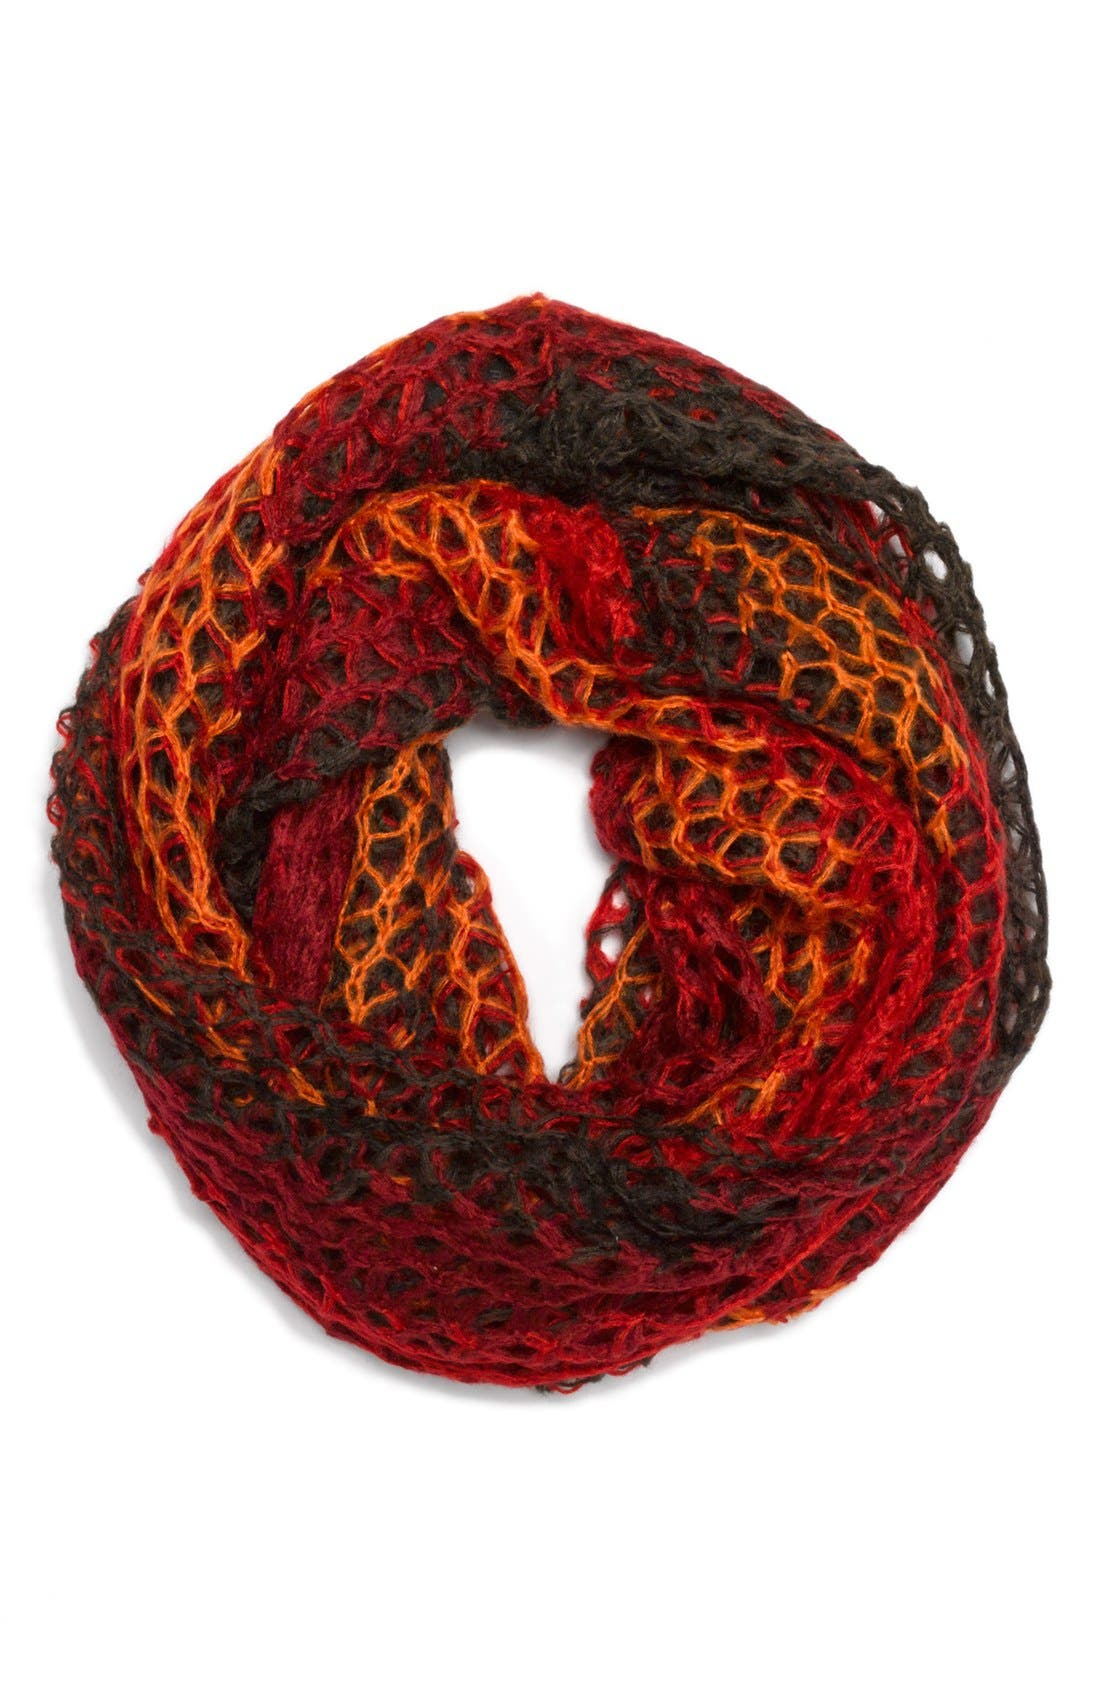 Alternate Image 1 Selected - Steve Madden 'Chain Link' Infinity Scarf